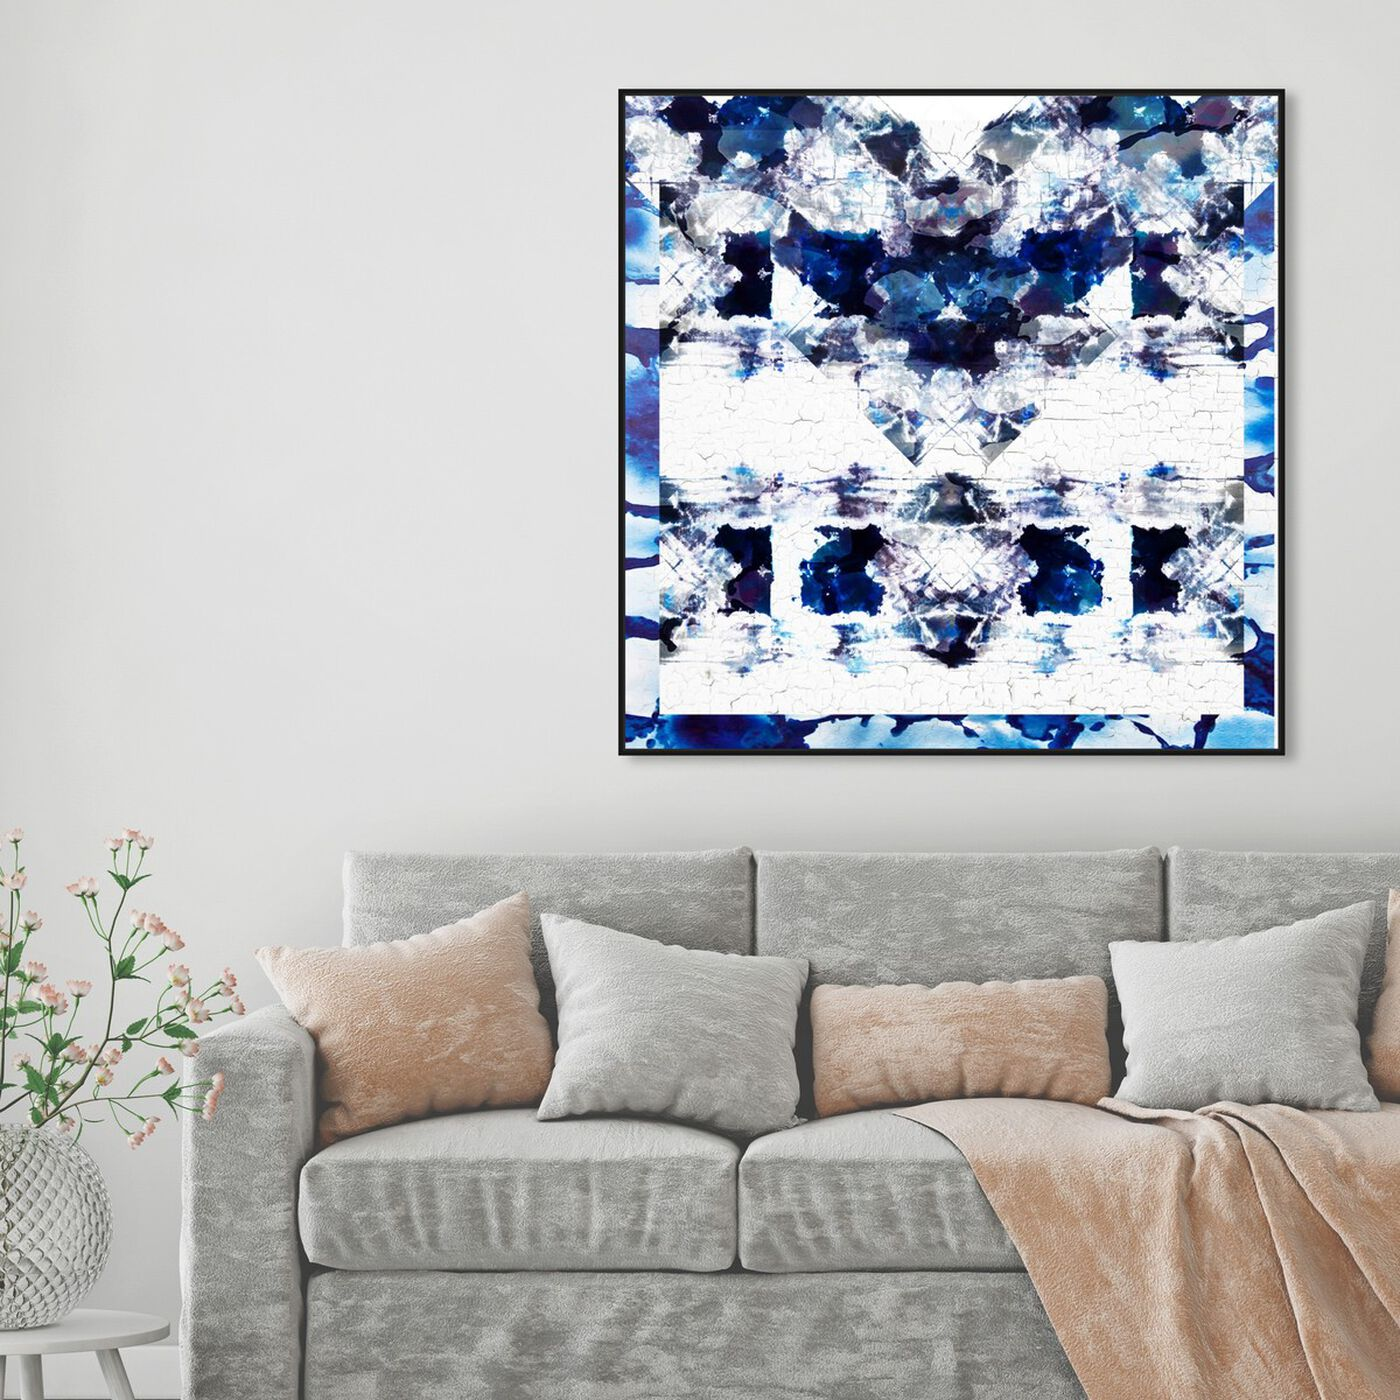 Hanging view of Oeuvre in Blue featuring abstract and patterns art.